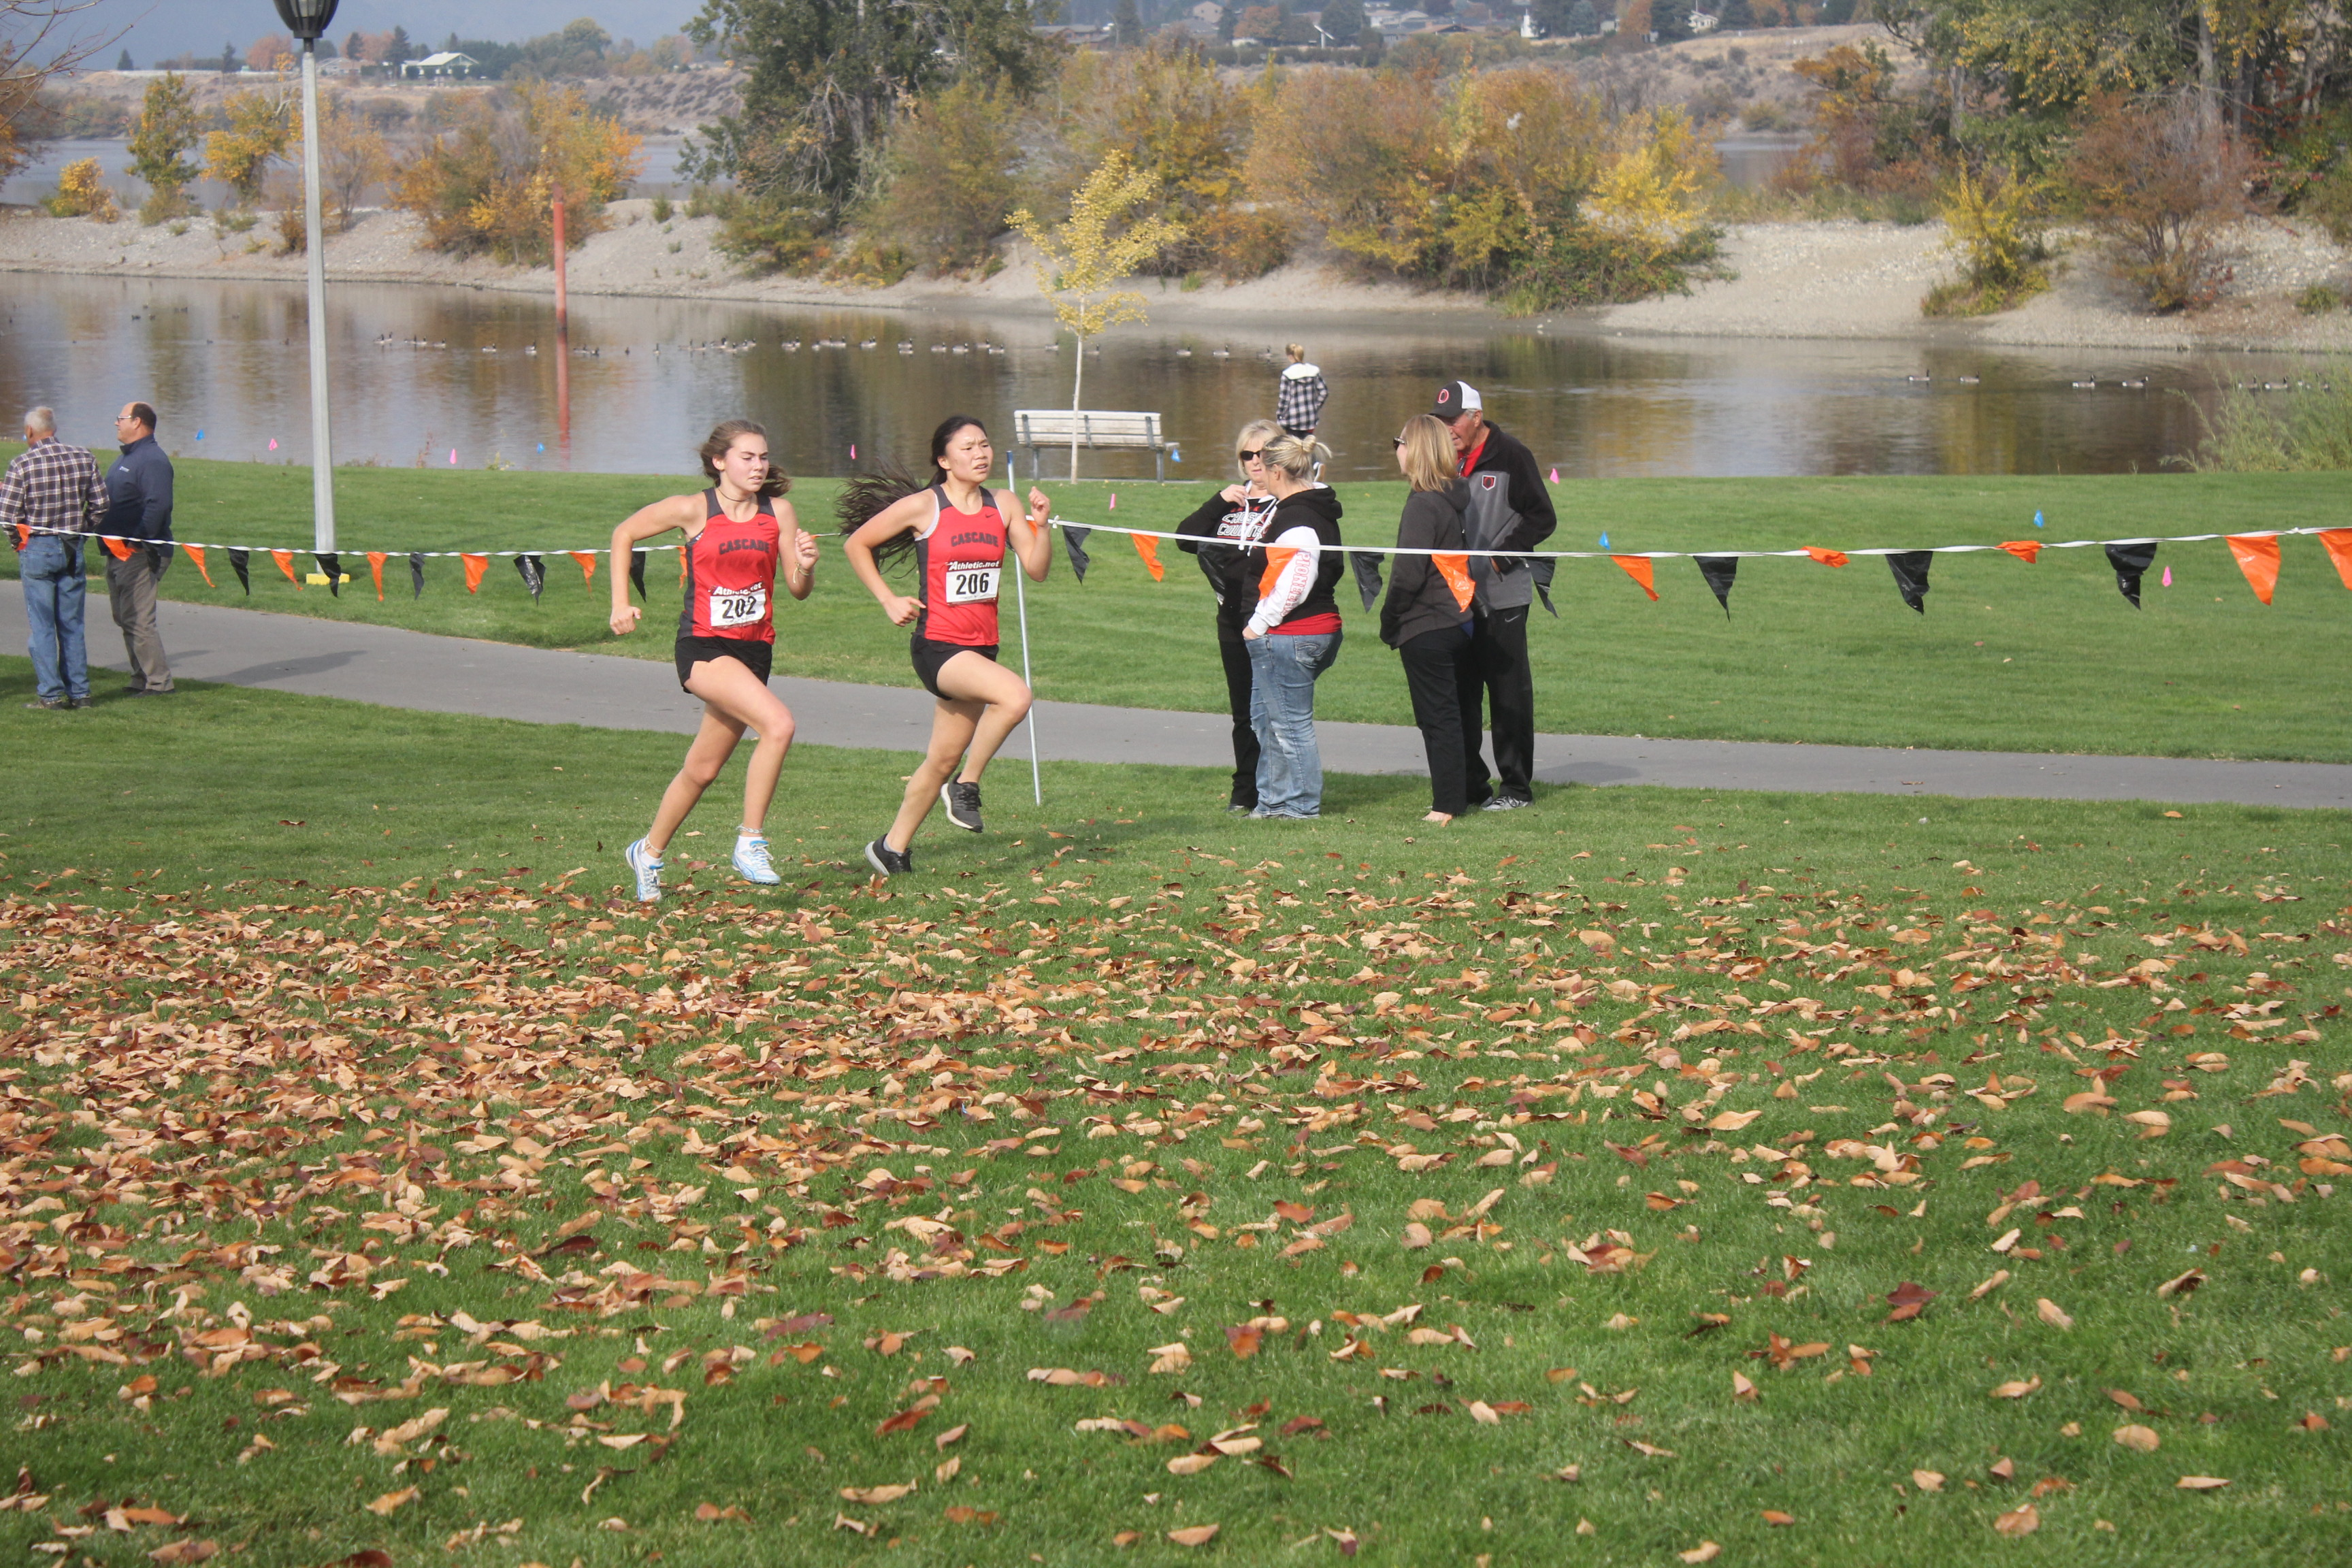 Tiera Groff and Isabel Rodriguez stride side by side.